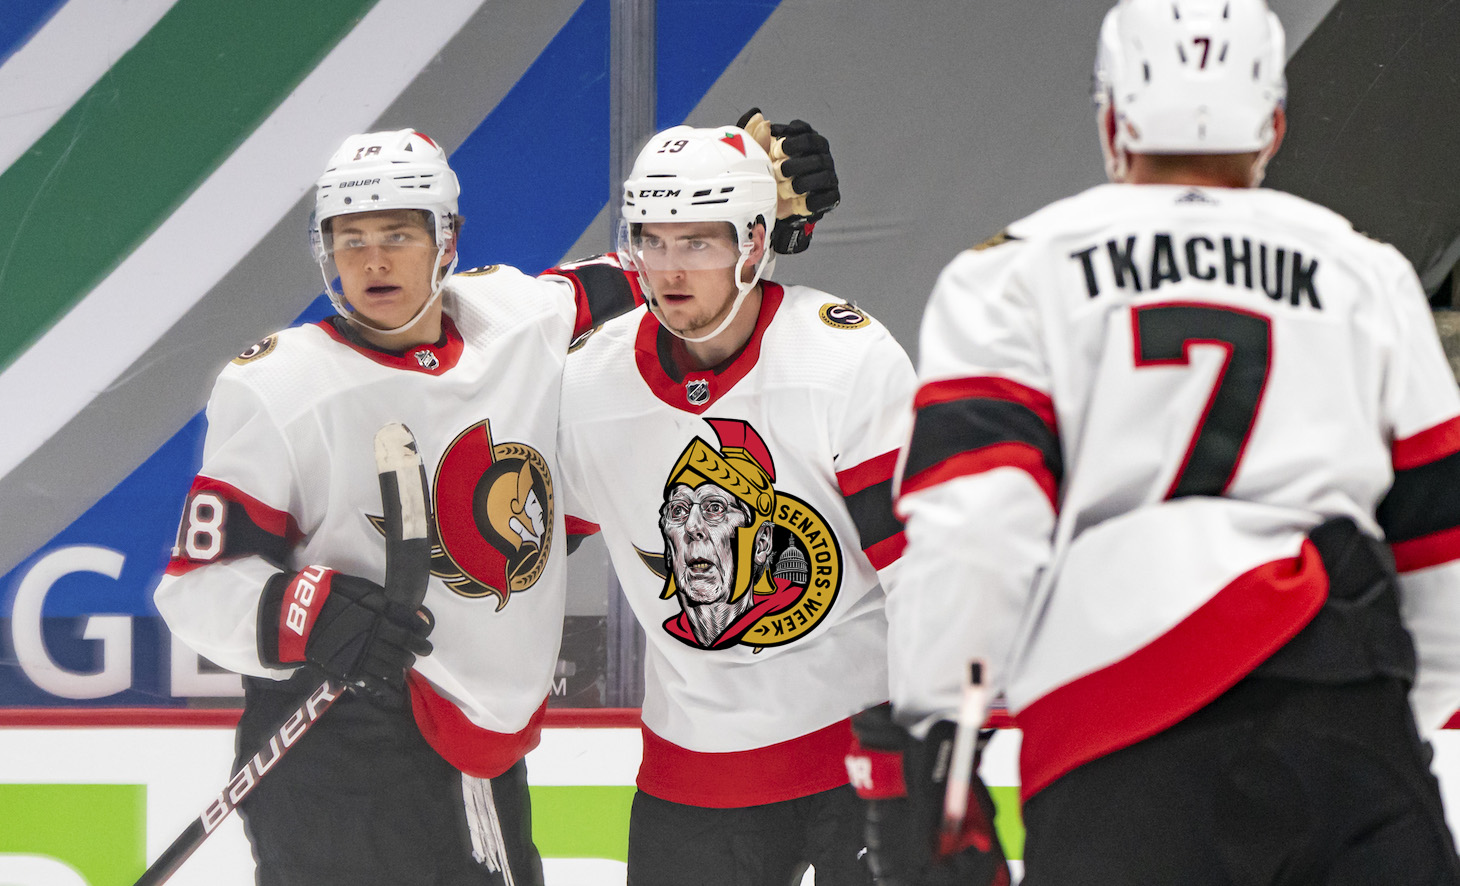 VANCOUVER, BC - APRIL 22: Drake Batherson #19 of the Ottawa Senators is congratulated by teammates Tim Stutzle #18 and Brady Tkachuk #7 after scoring a goal against the Vancouver Canucks during the first period of NHL action at Rogers Arena on April 22, 2021 in Vancouver, Canada. (Photo by Rich Lam/Getty Images)